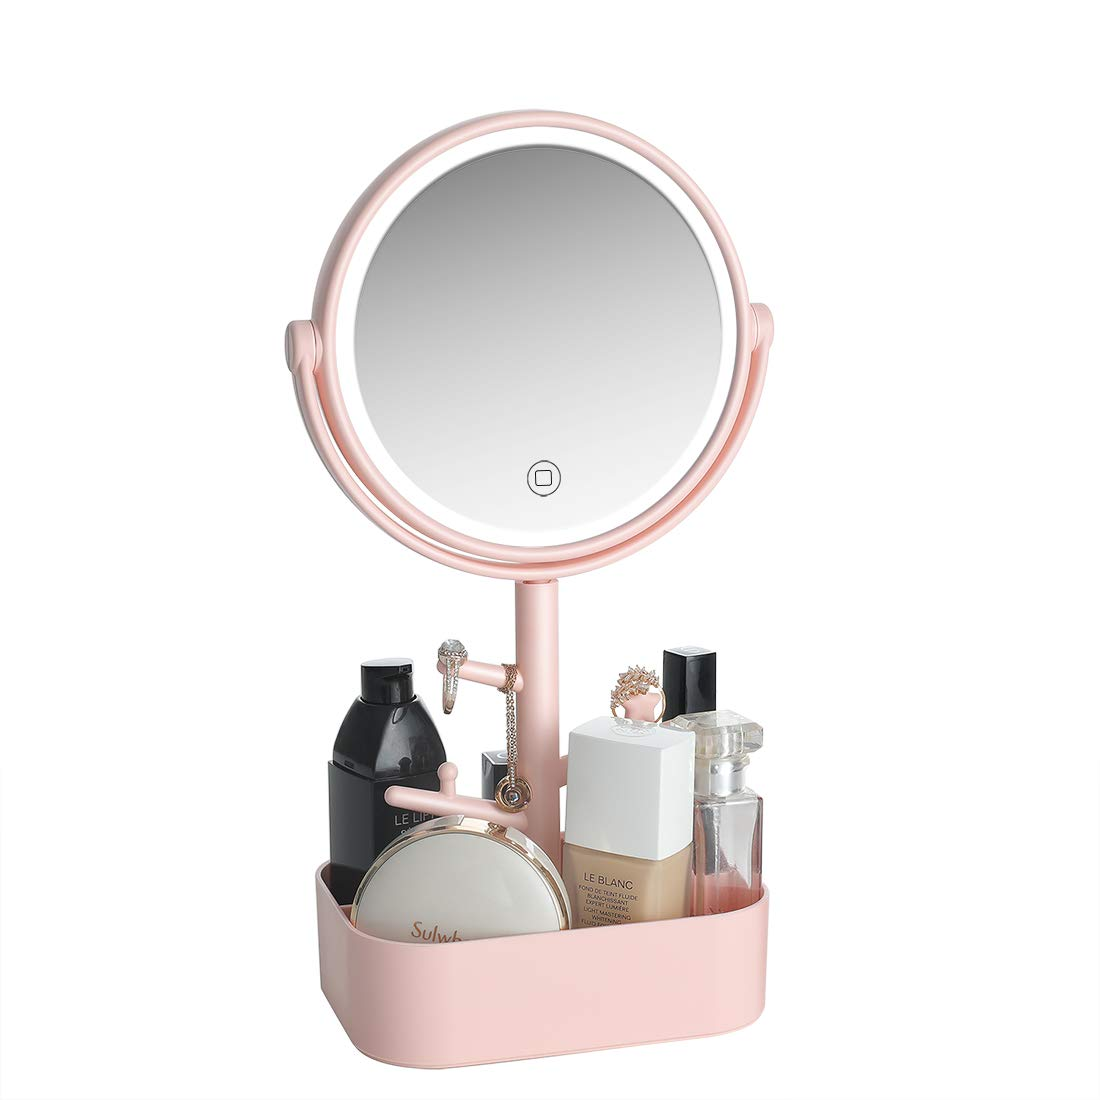 LED lighted Makeup mirror rechargeable, USB Battery two power supply modes. Vanity Mirror with Natural white light, Touch screen switch, dimmable light Cosmetic mirror with jewelry holder. Pink